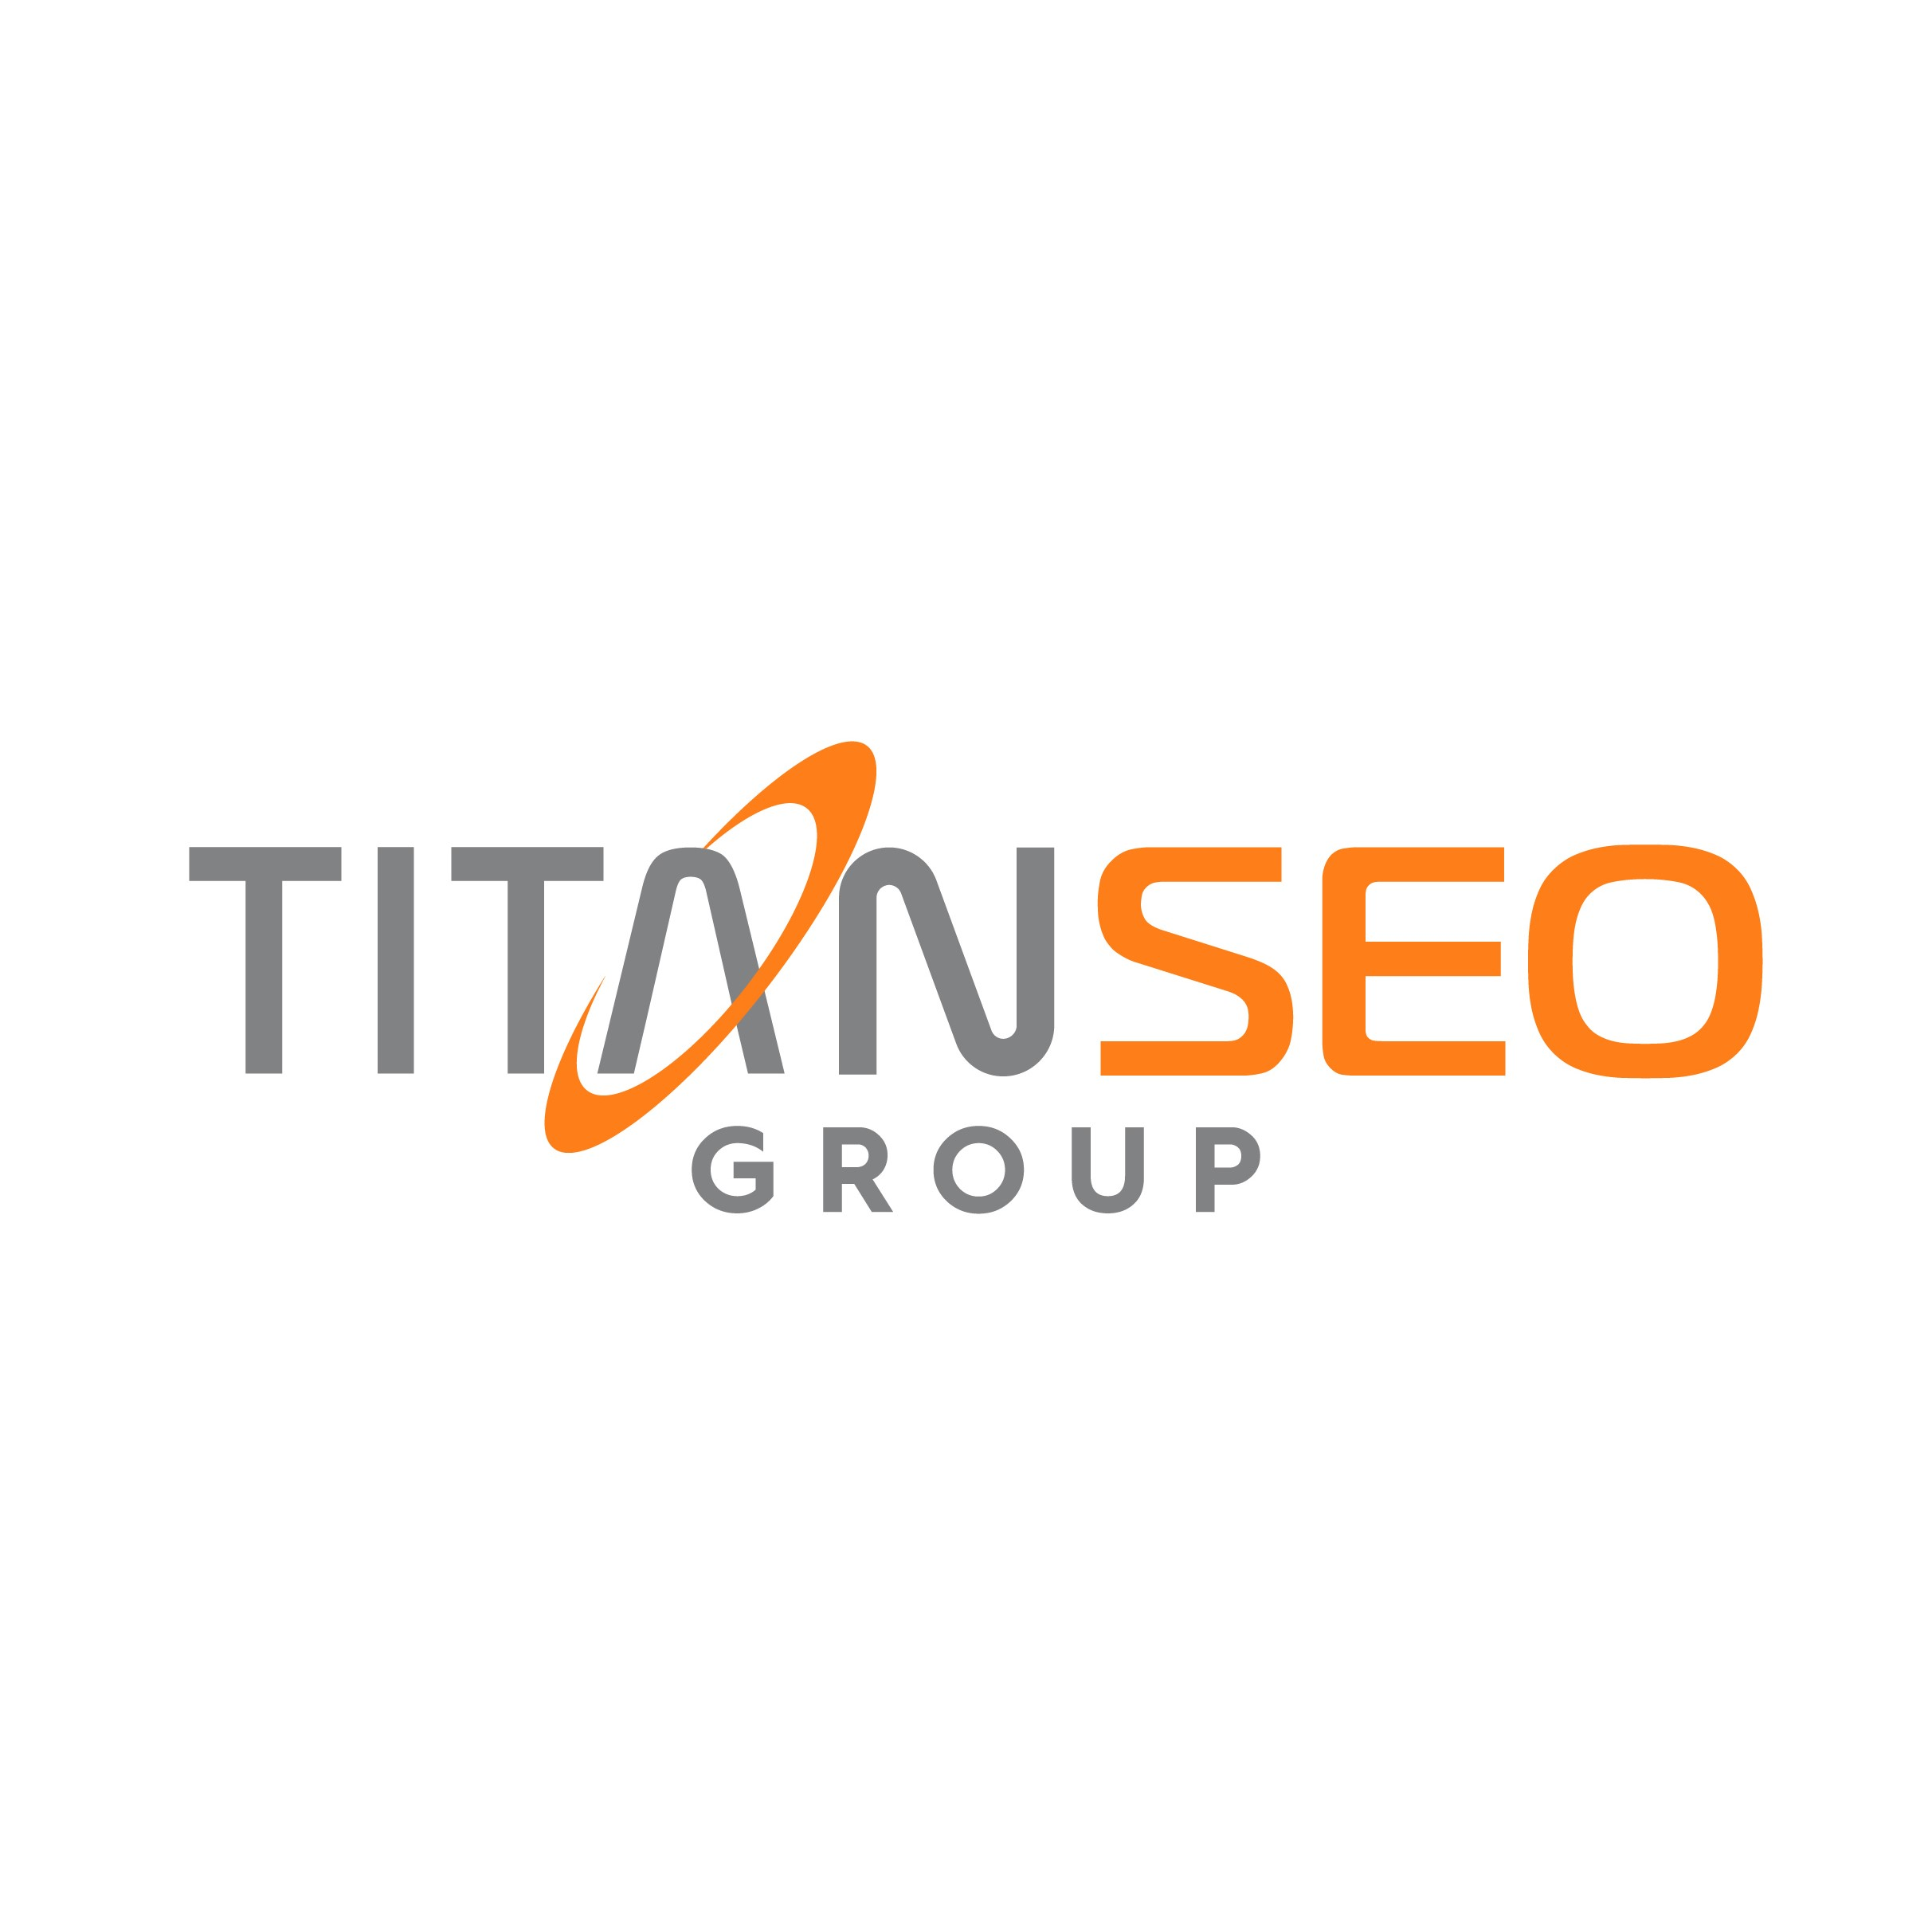 Titan SEO Group Logo